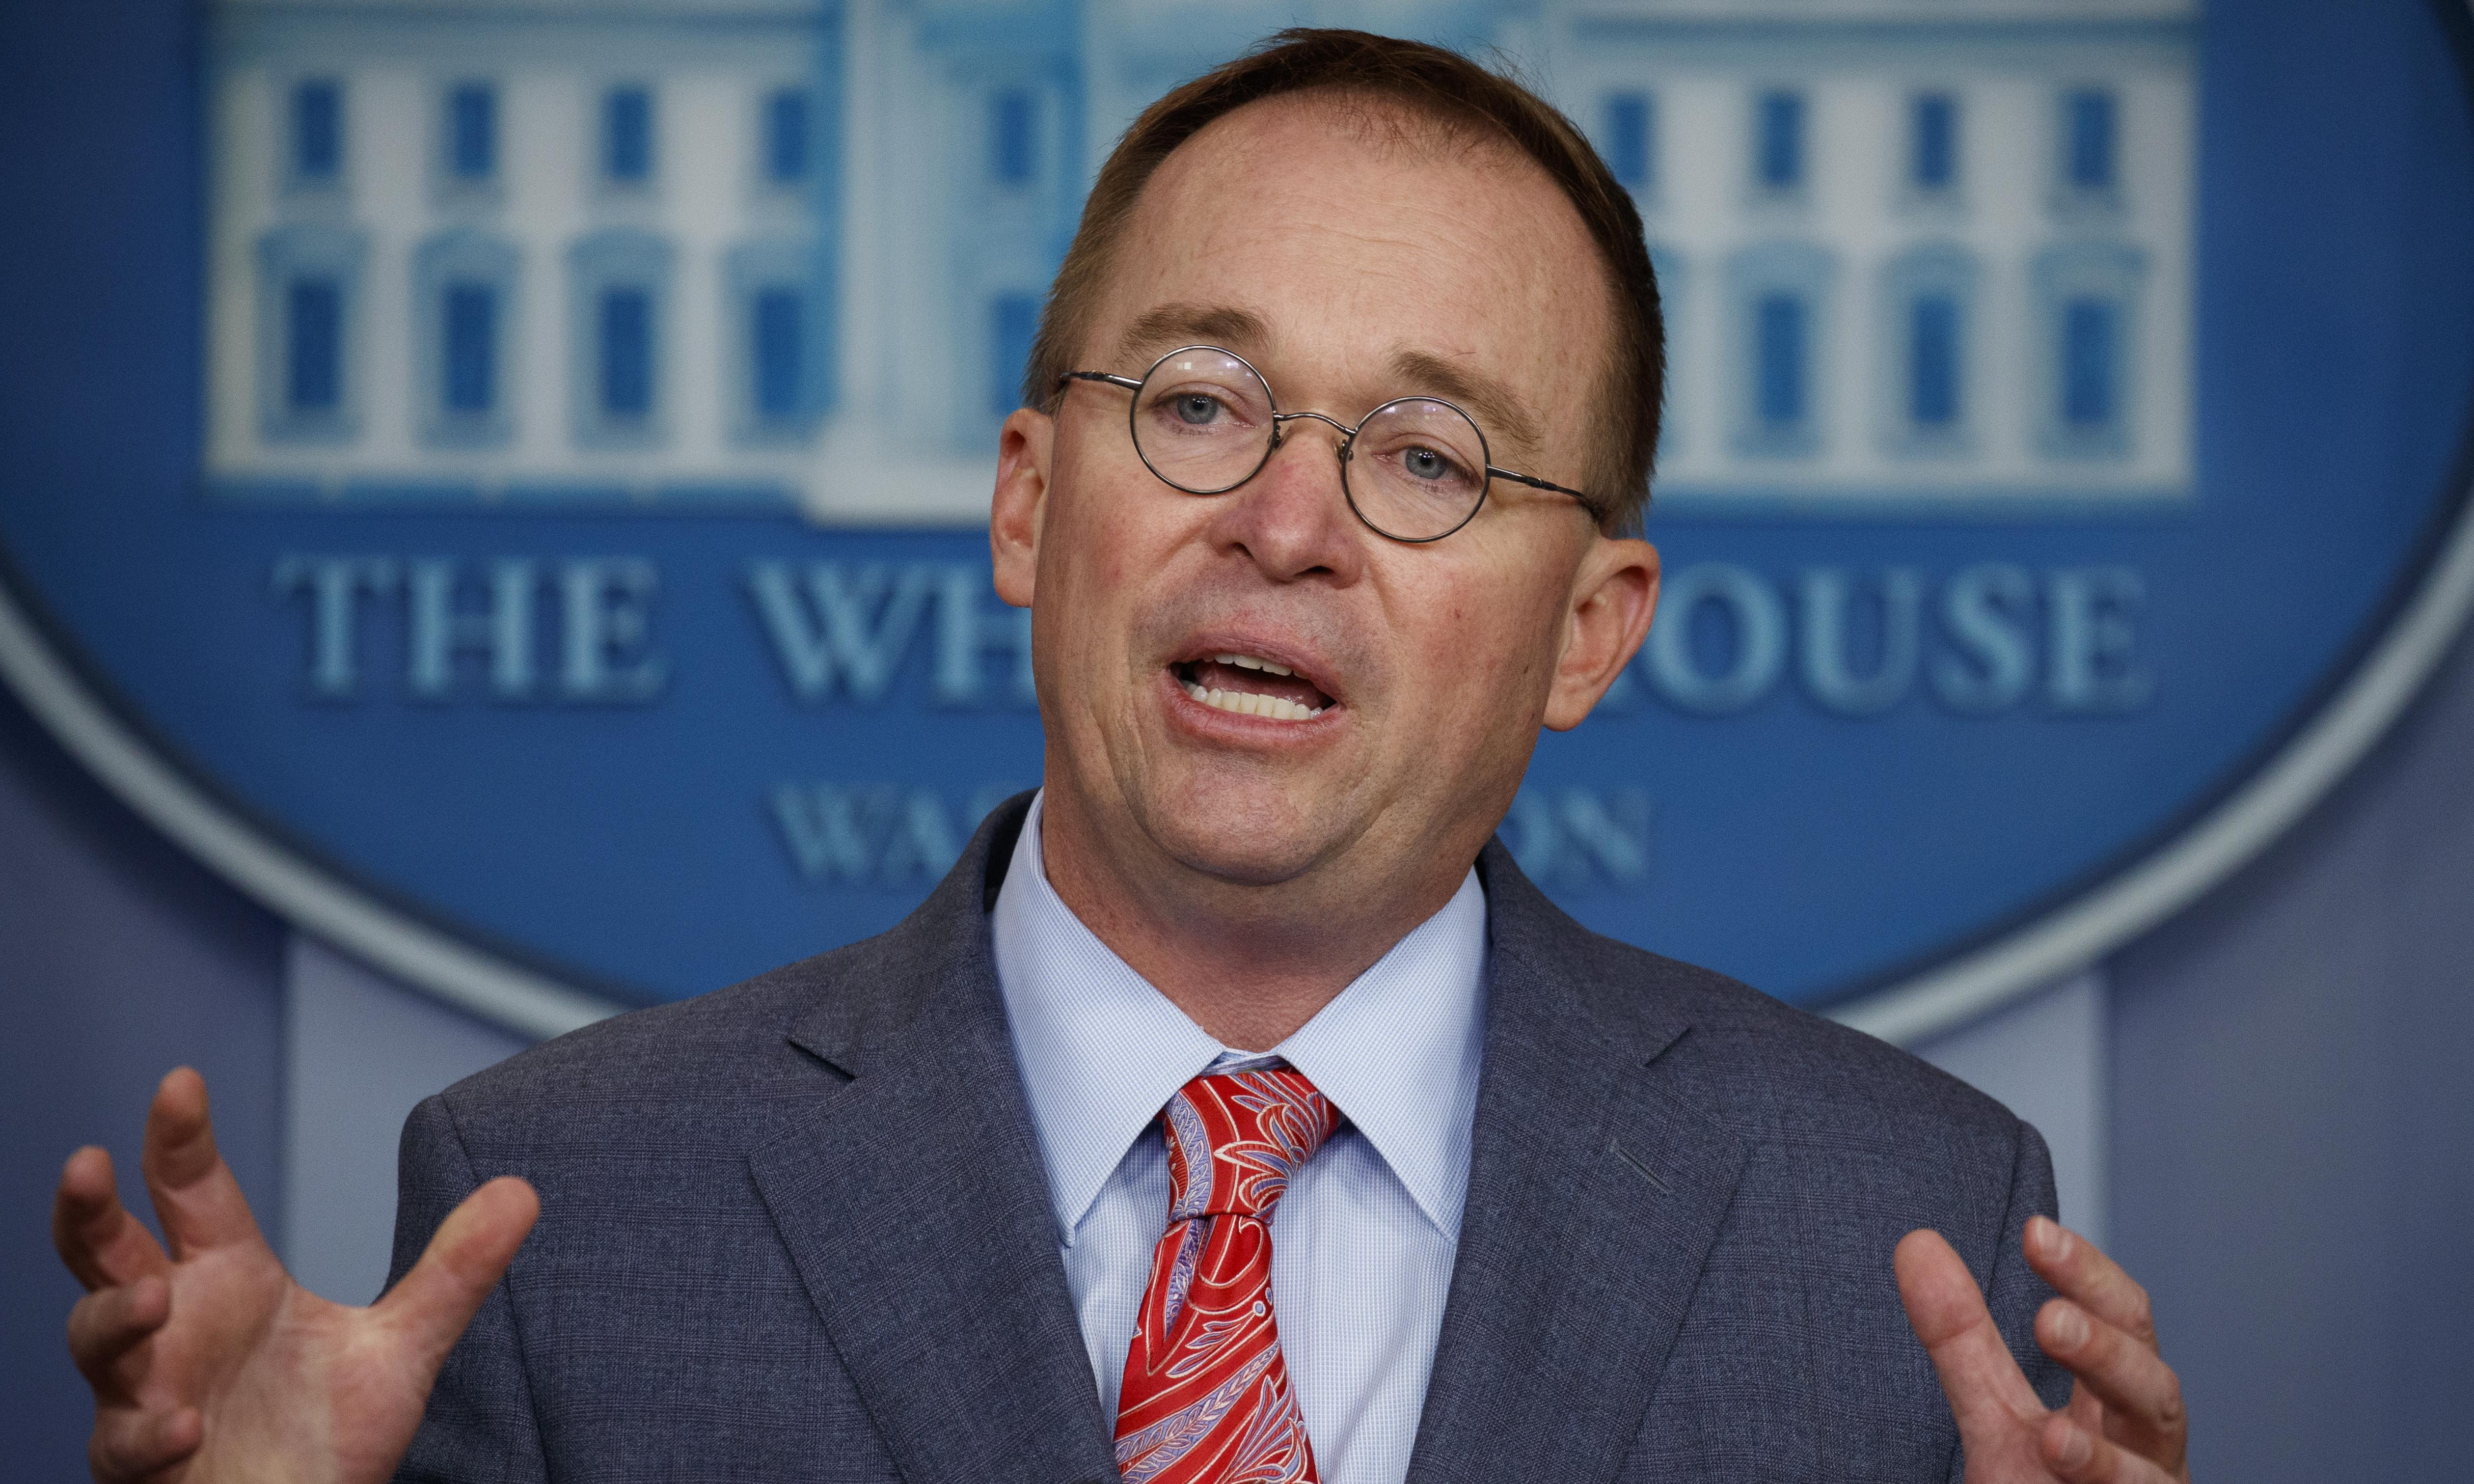 Mick Mulvaney suggests Trump withheld Ukraine aid in quid pro quo